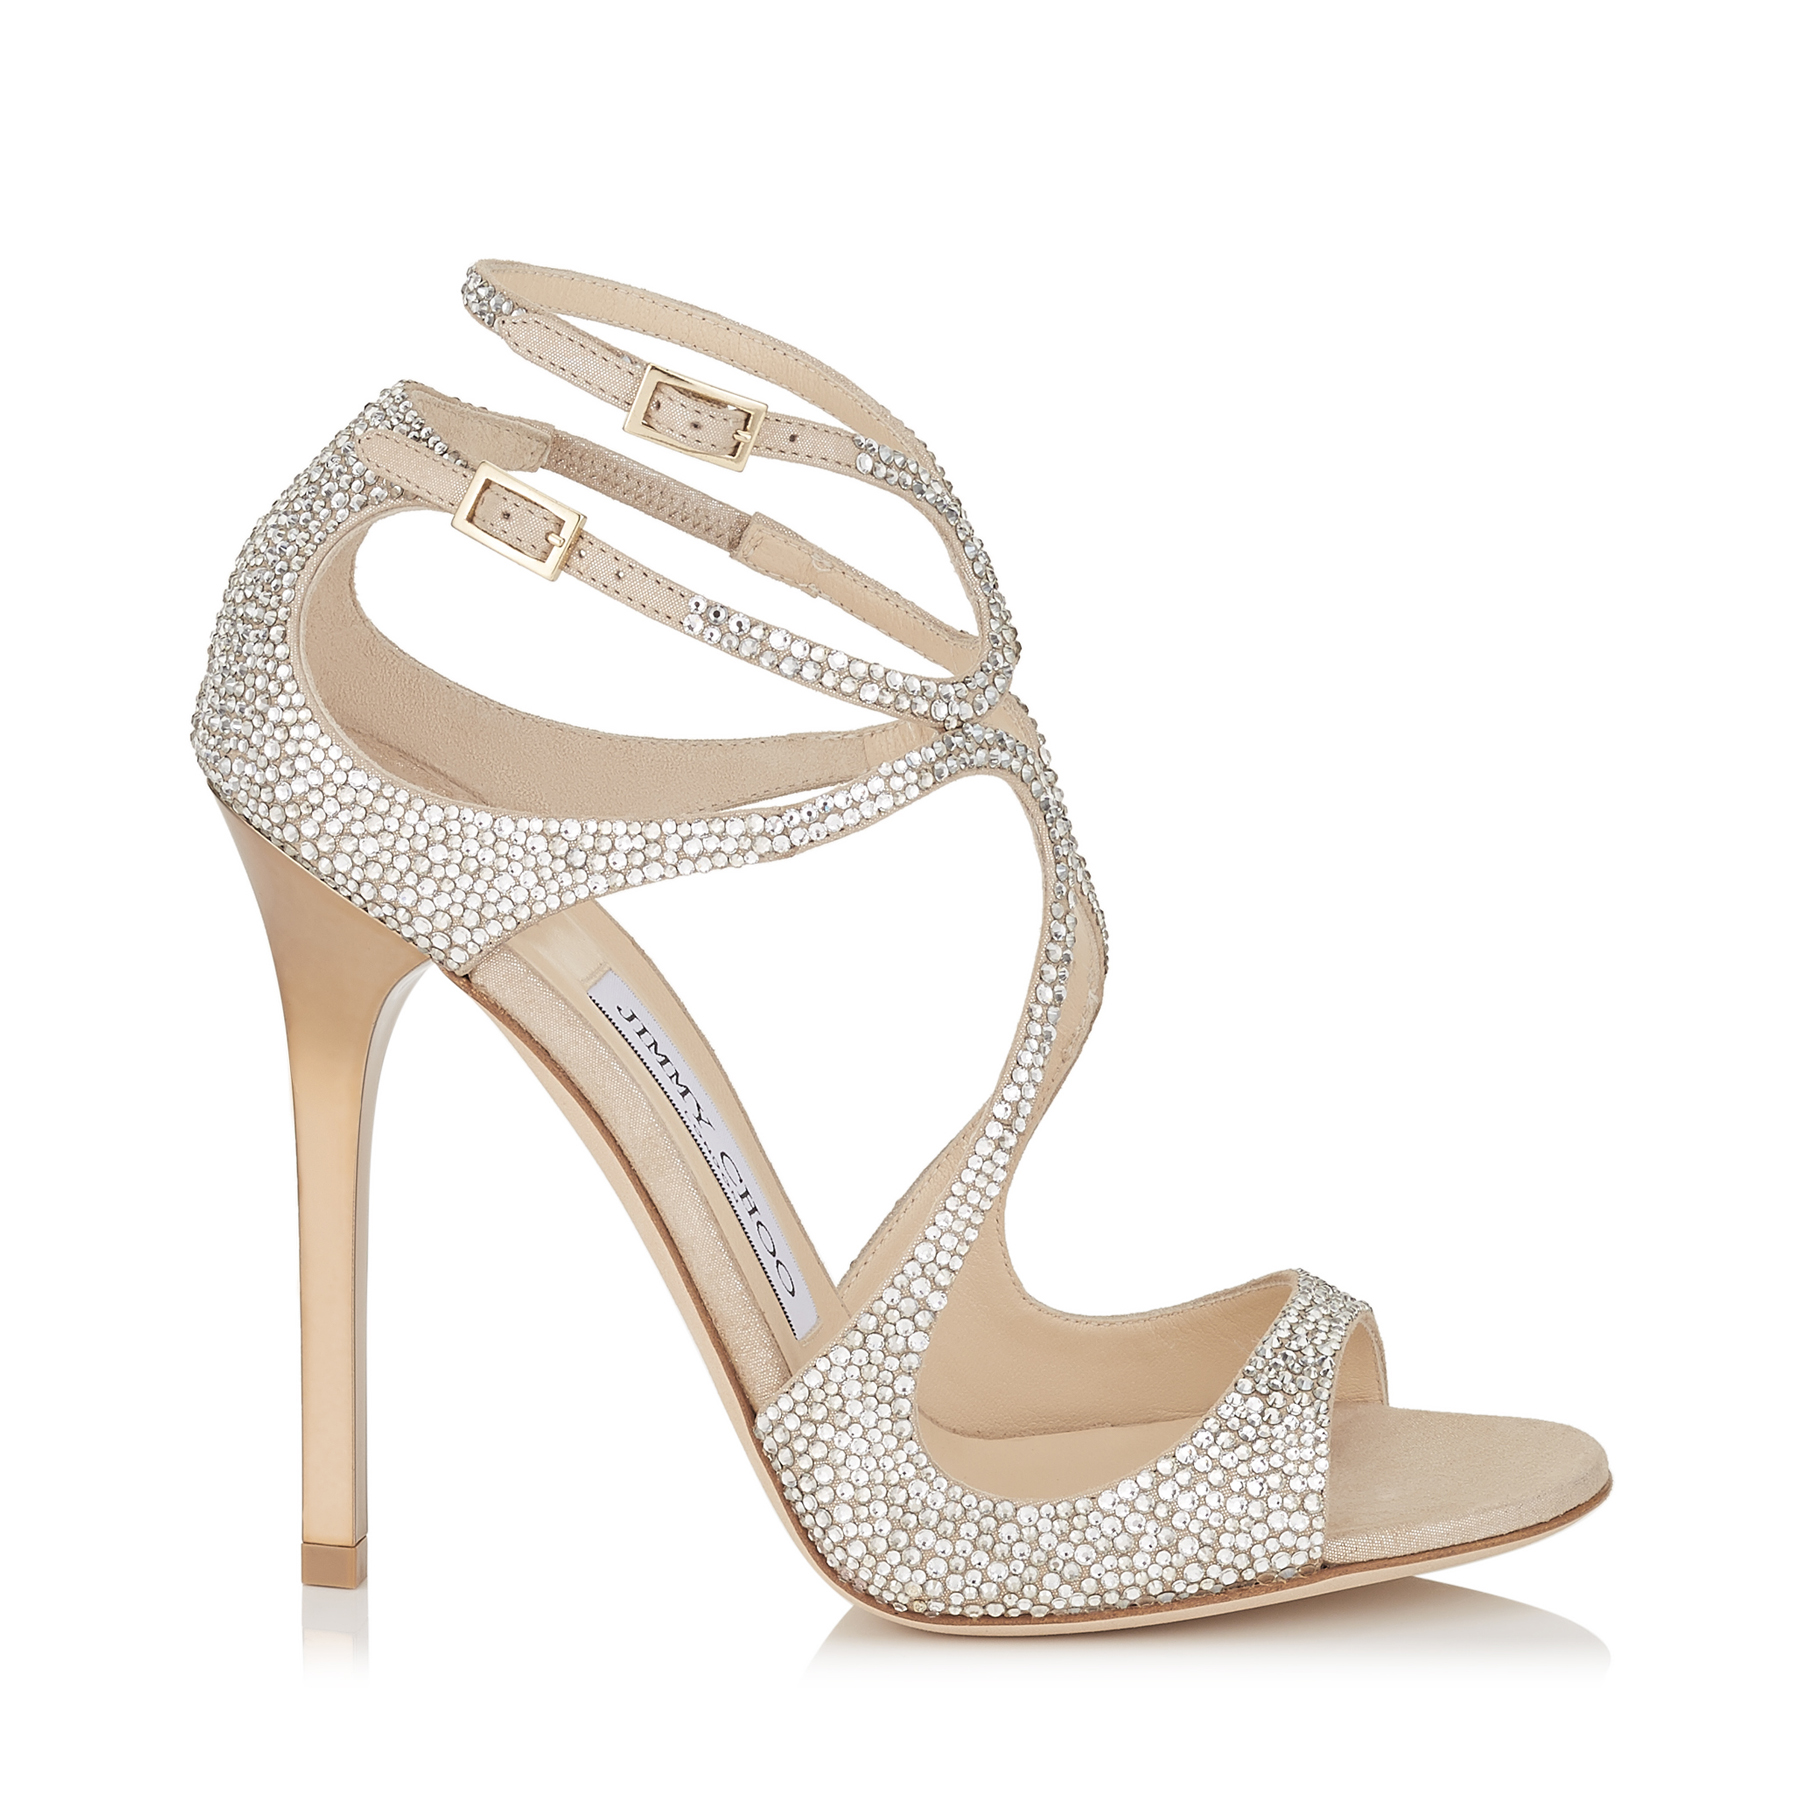 LANCE Nude Suede Sandals with Crystals